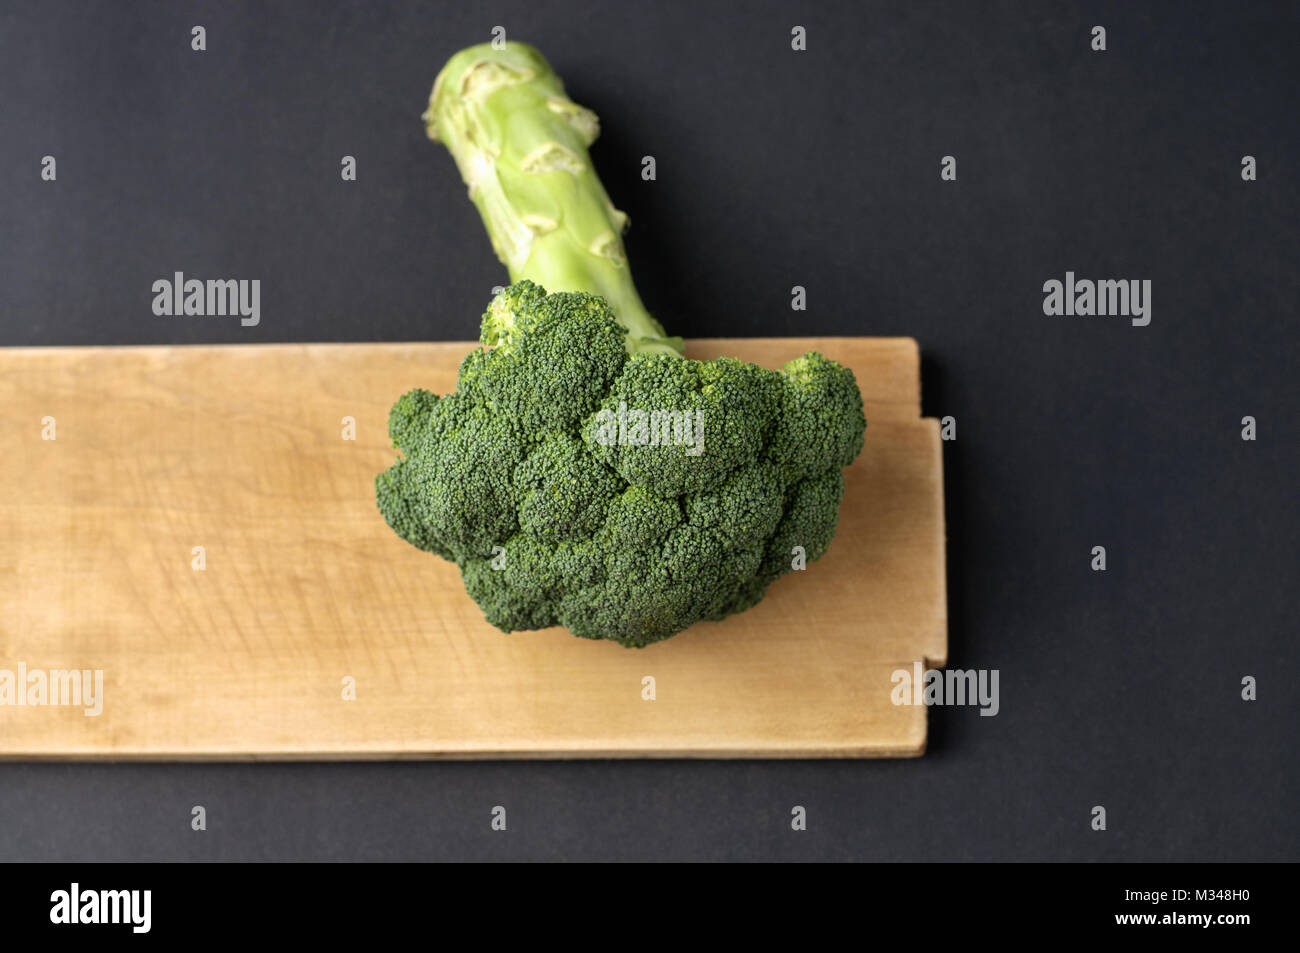 Broccoli and cutting board on dark background Stock Photo